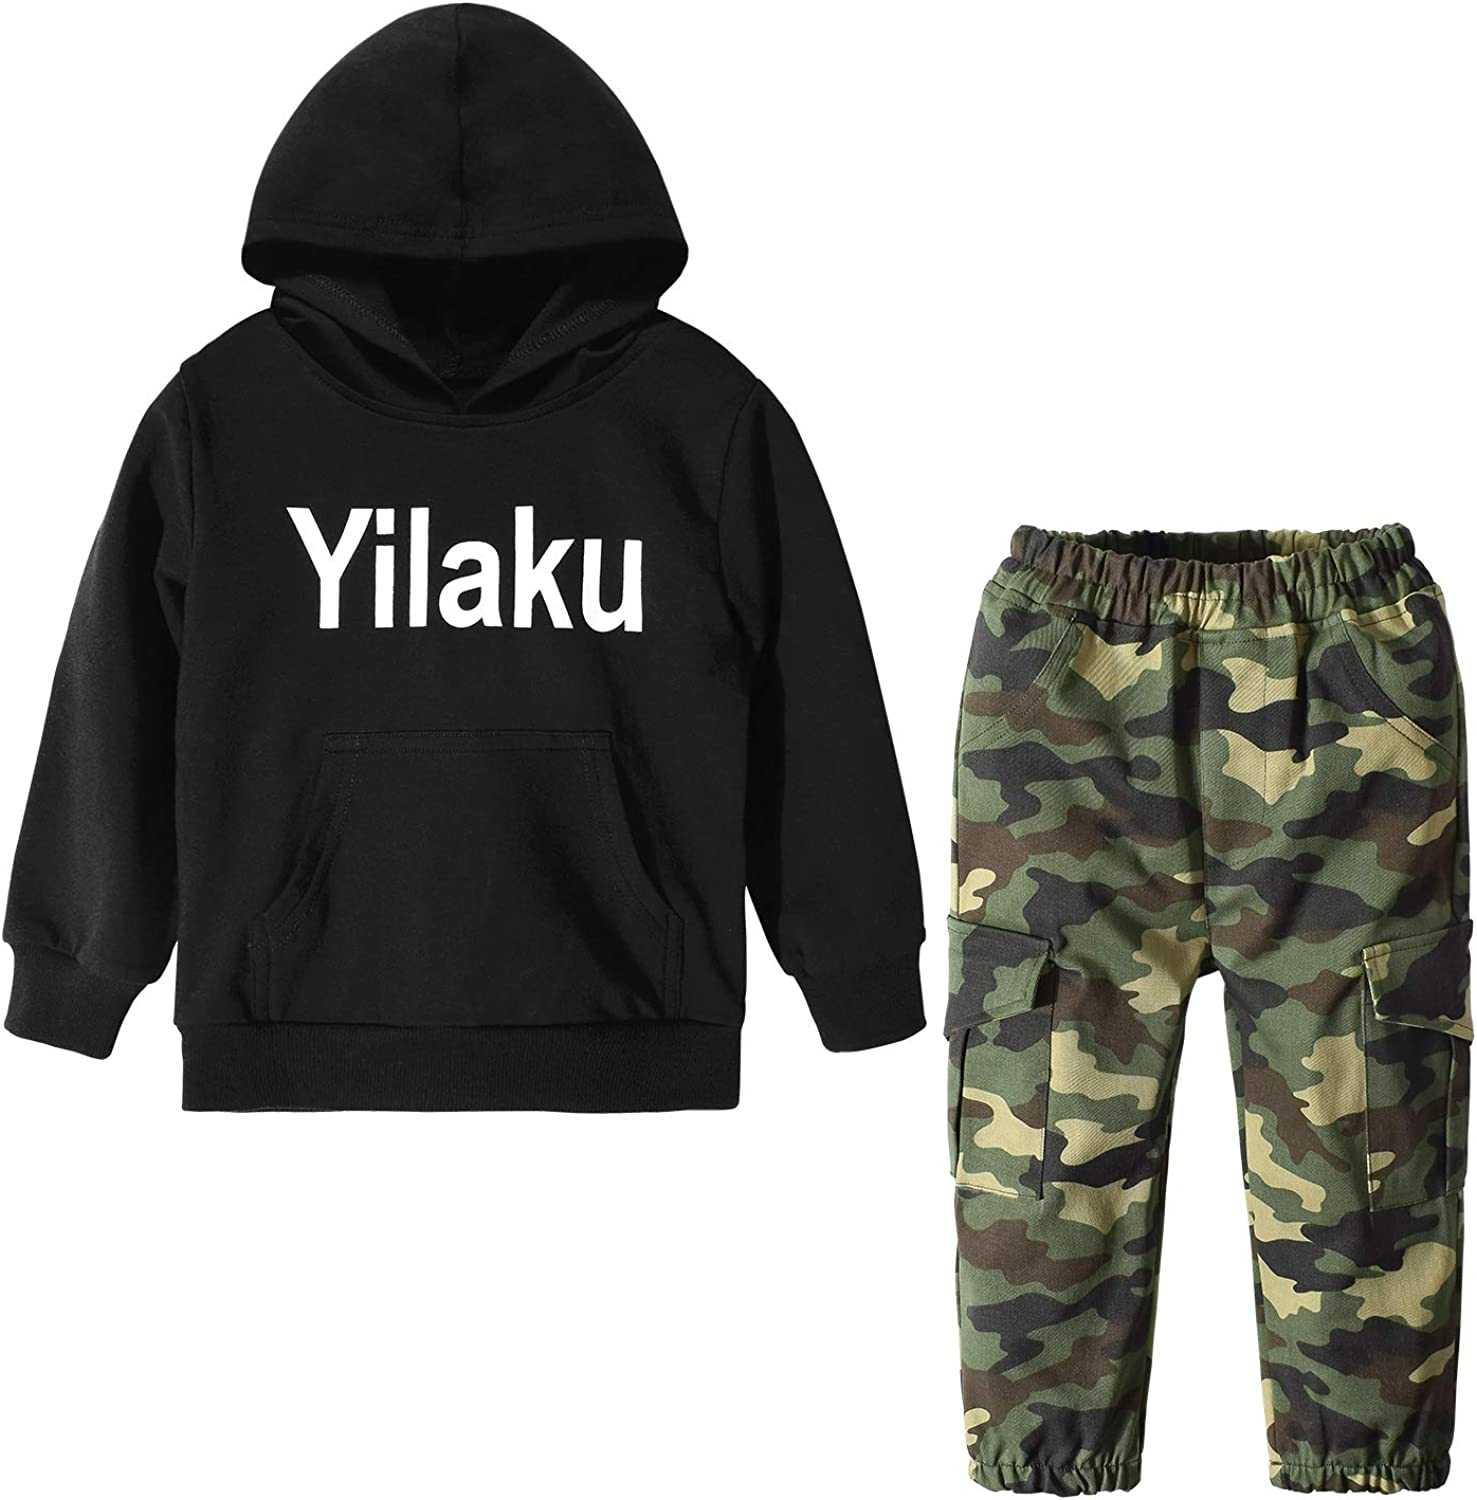 Boy Clothes Set Winter Max 67% OFF Shirt + Pant 2 2021 spring and summer new Toddler Sets Pieces Ea